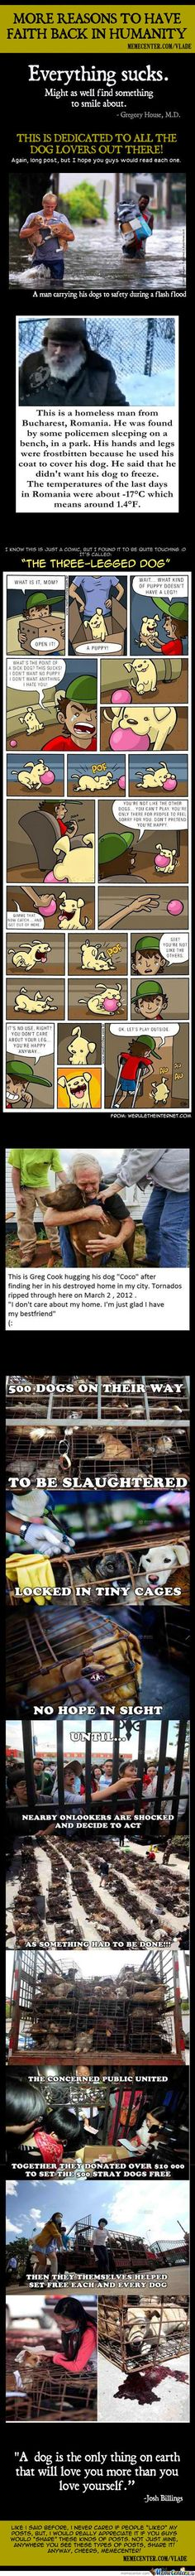 Restore My Faith In Humanity